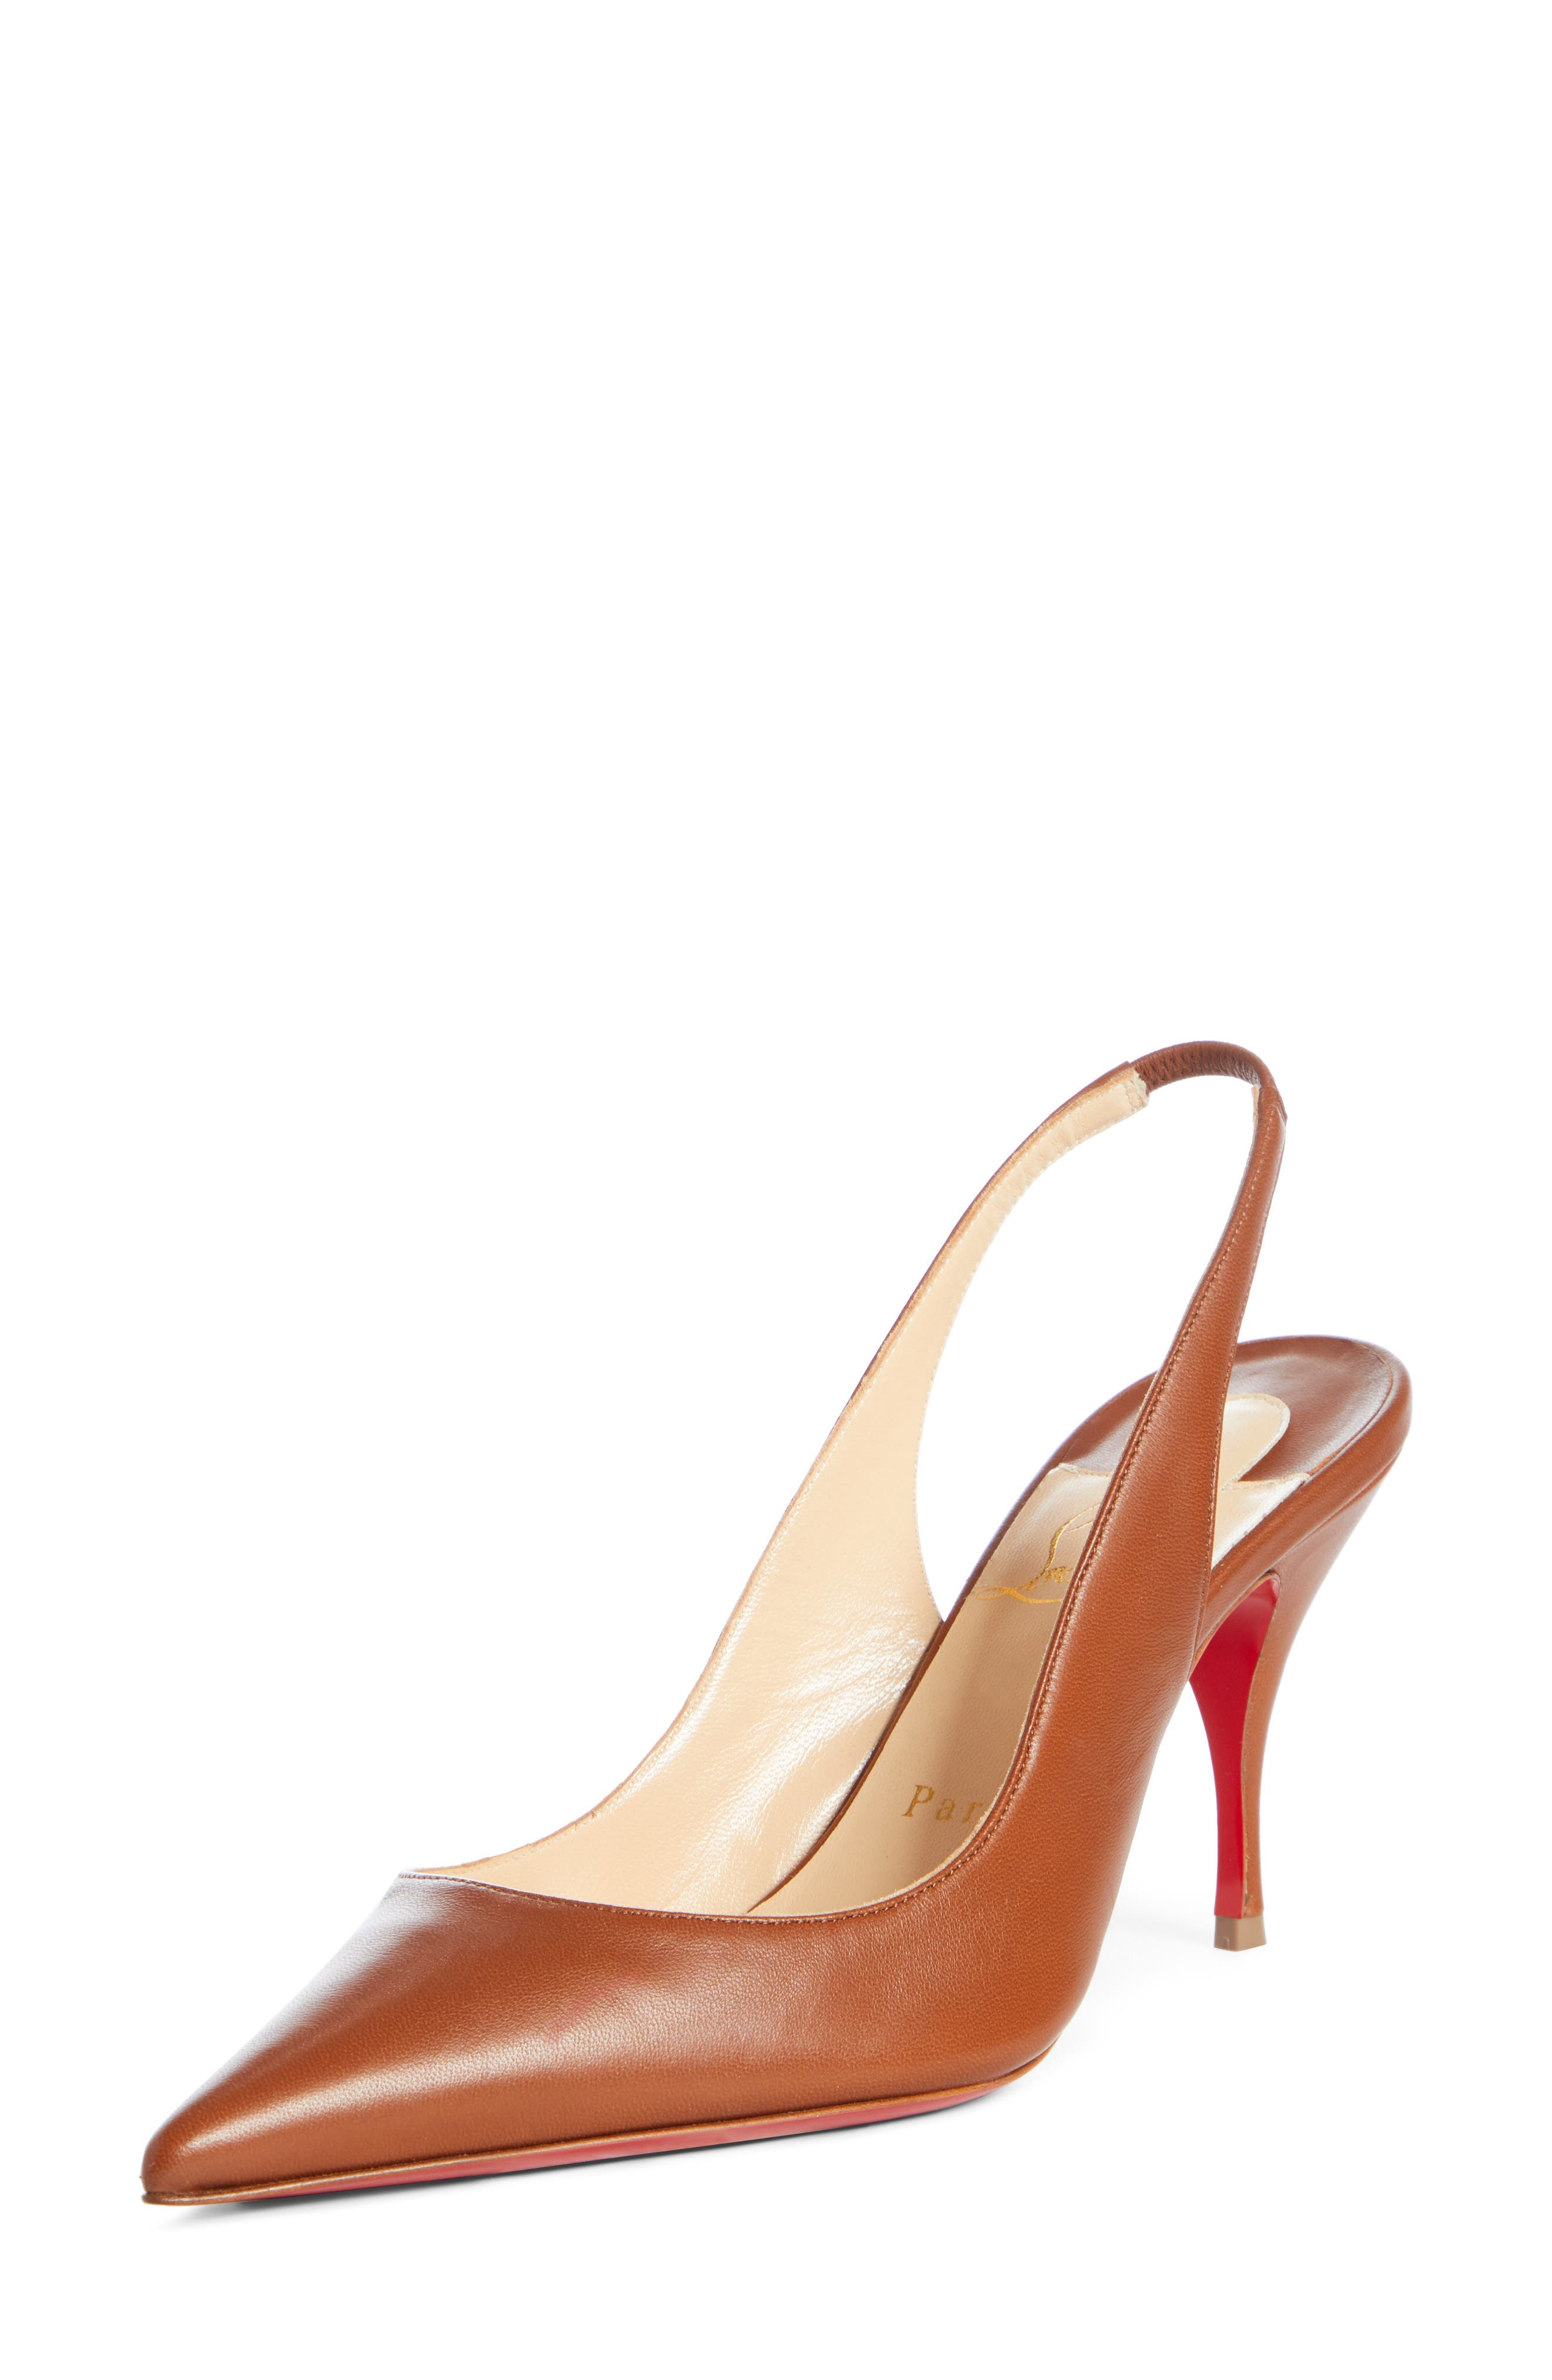 A sharp pointy toe, tapered heel and iconic red sole detail a slingback pump designed for power moves. Style Name: Christian Louboutin Clare Slingback Pump (Women). Style Number: 5935103. Available in stores.